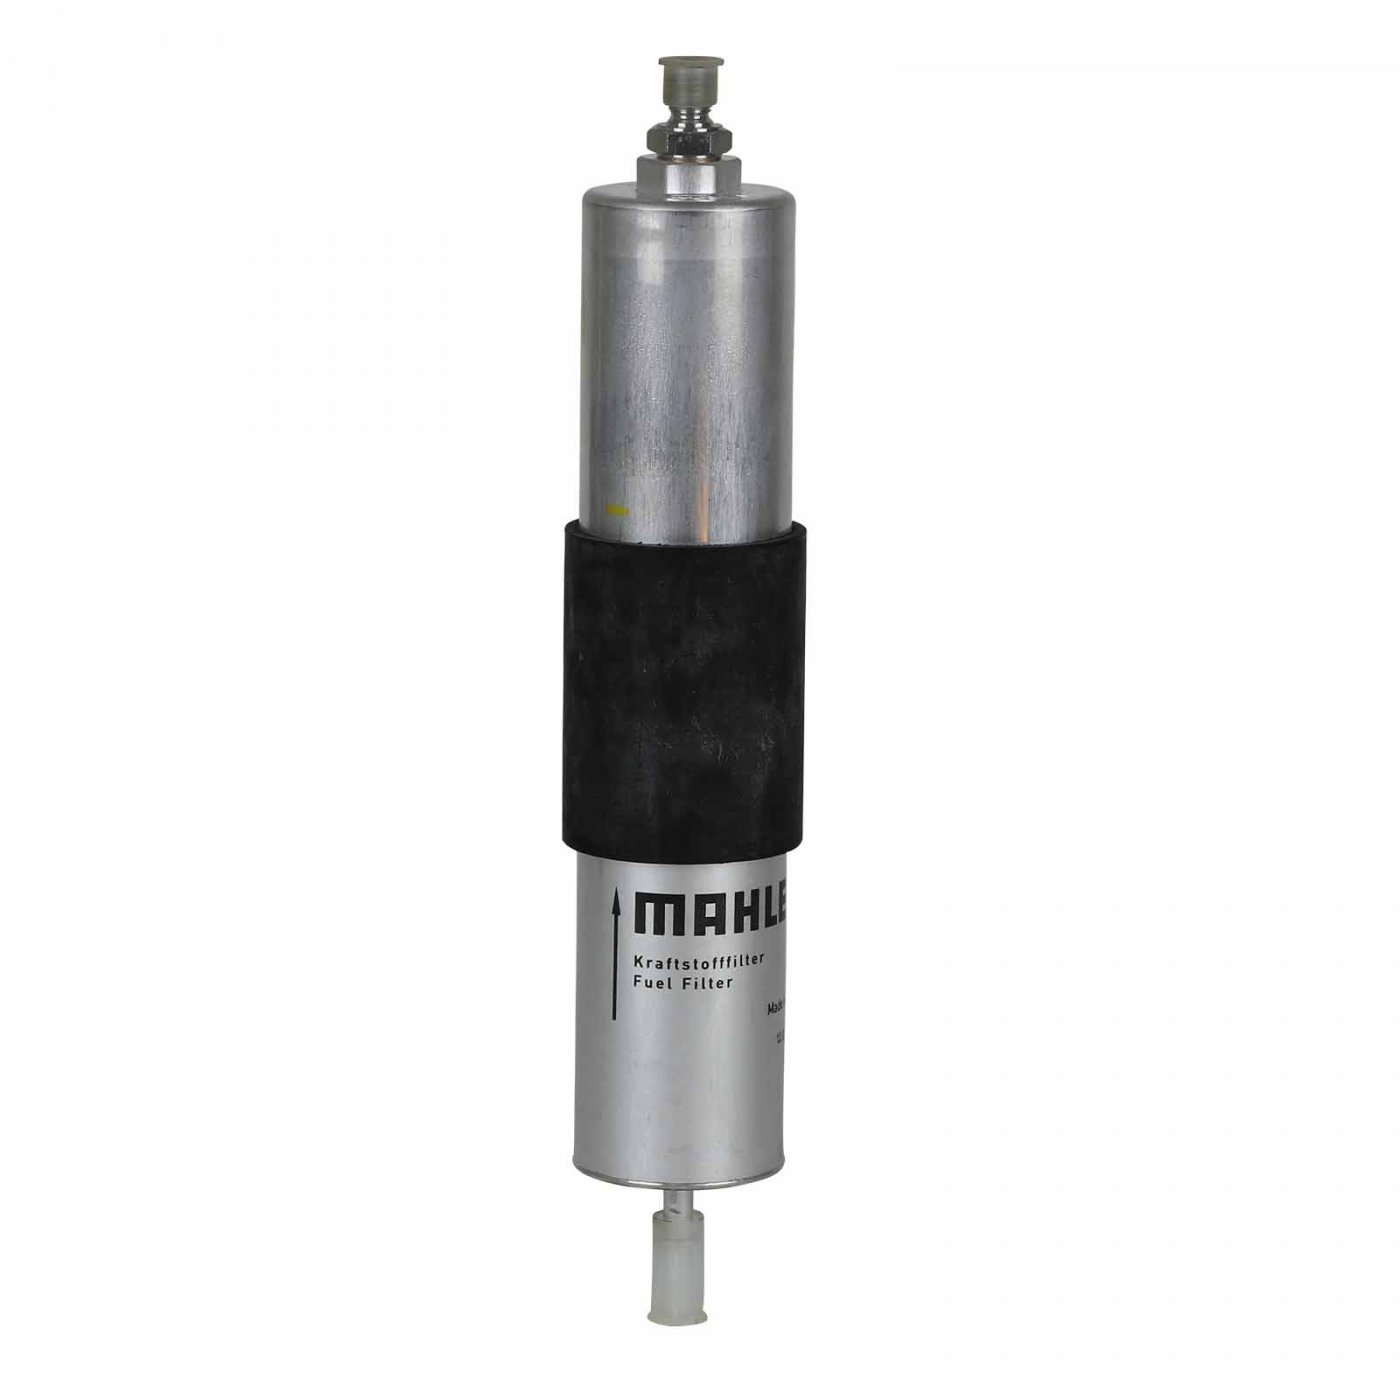 hight resolution of mahle kl104 1 fuel filter for bmw e46 m3 3 2 z3 m 3 2 car parts24 com onlin 31 99